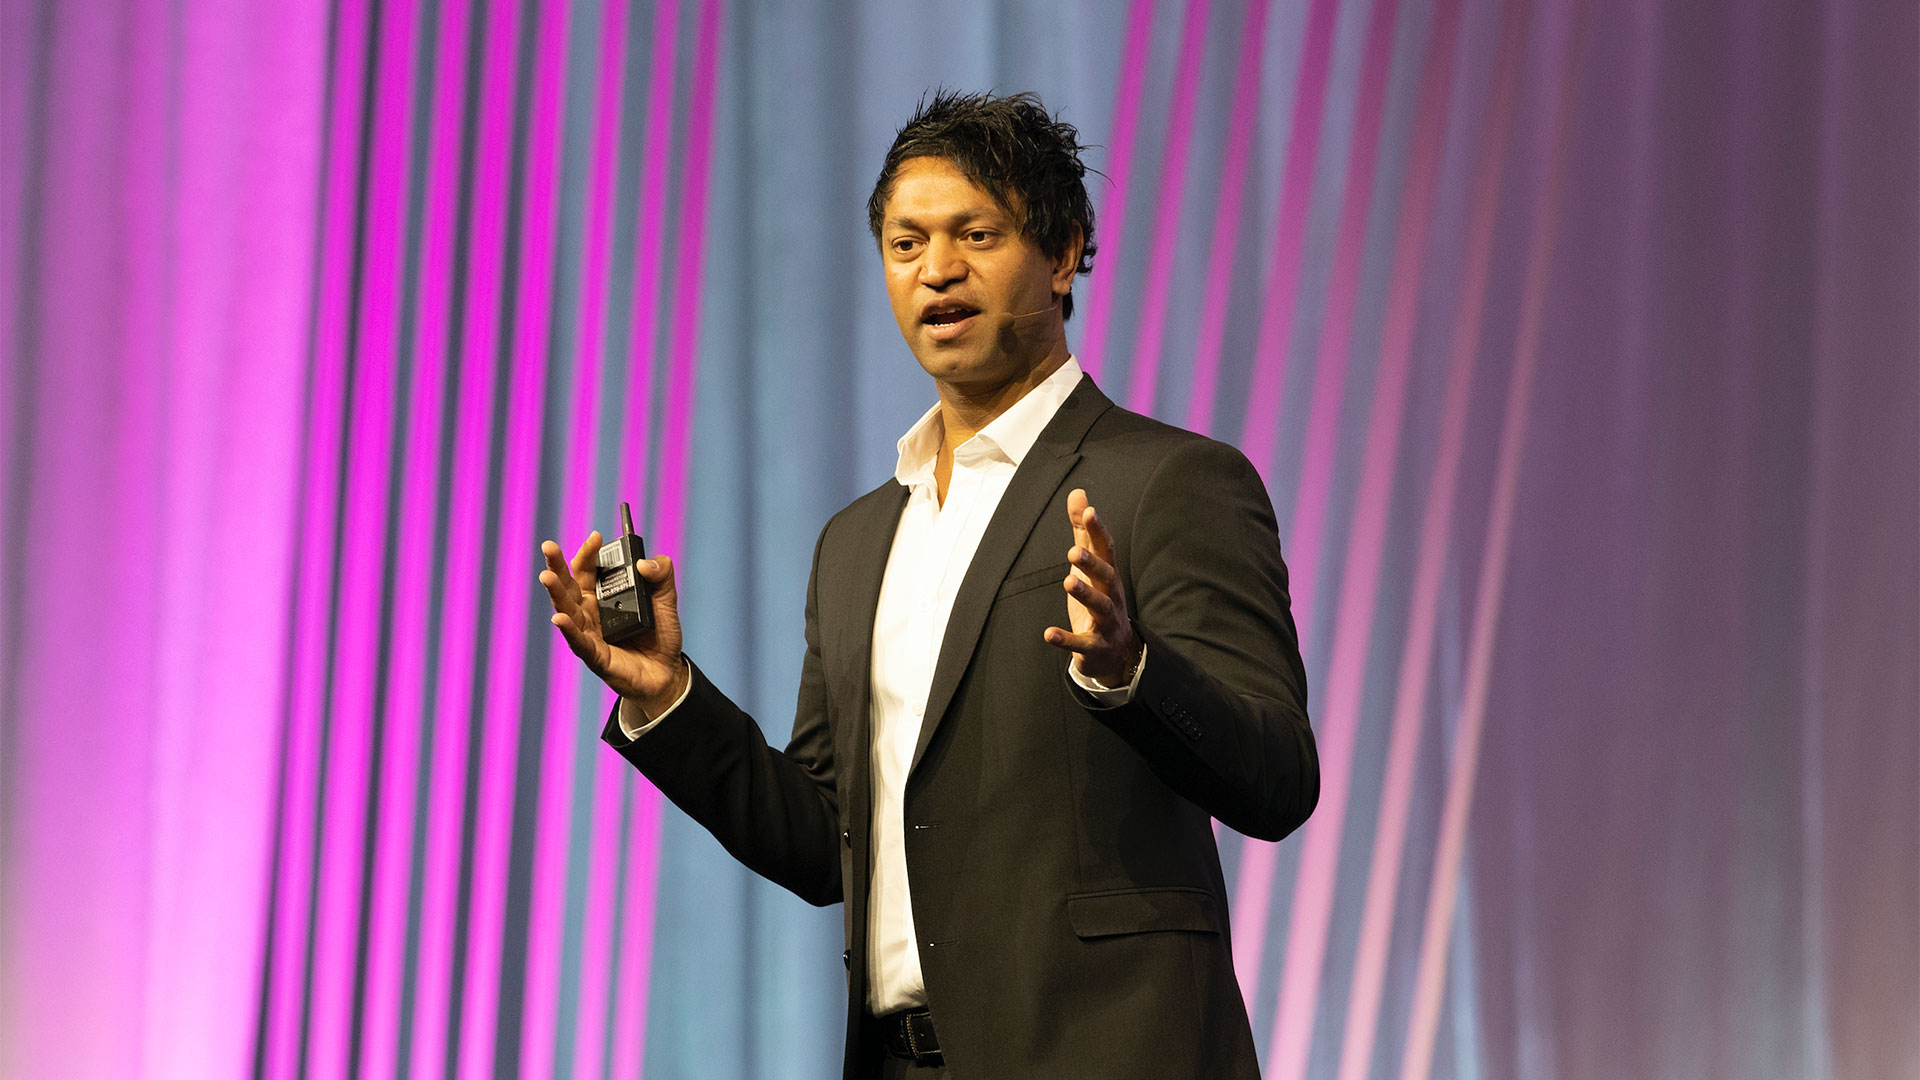 Saroo Brierley, RootsTech 2019 Keynote